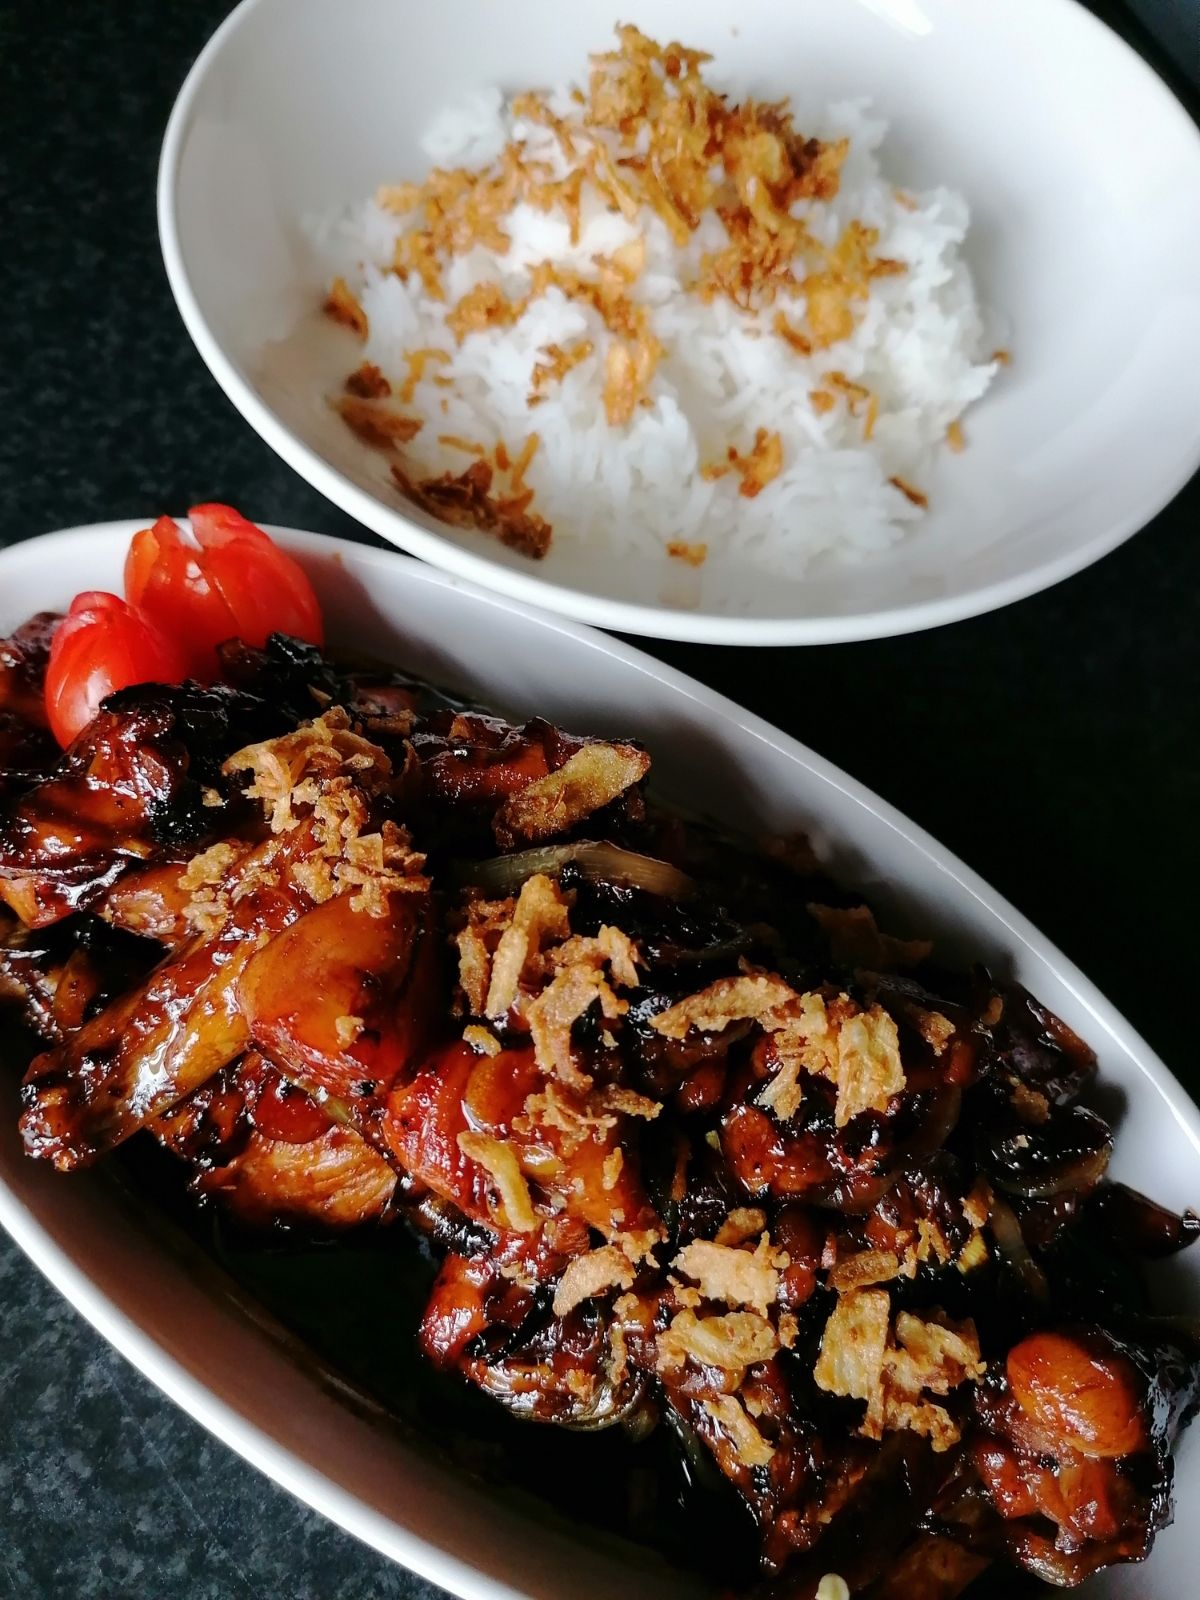 A dish of sweet soy sauce chicken and a bowl of white rice